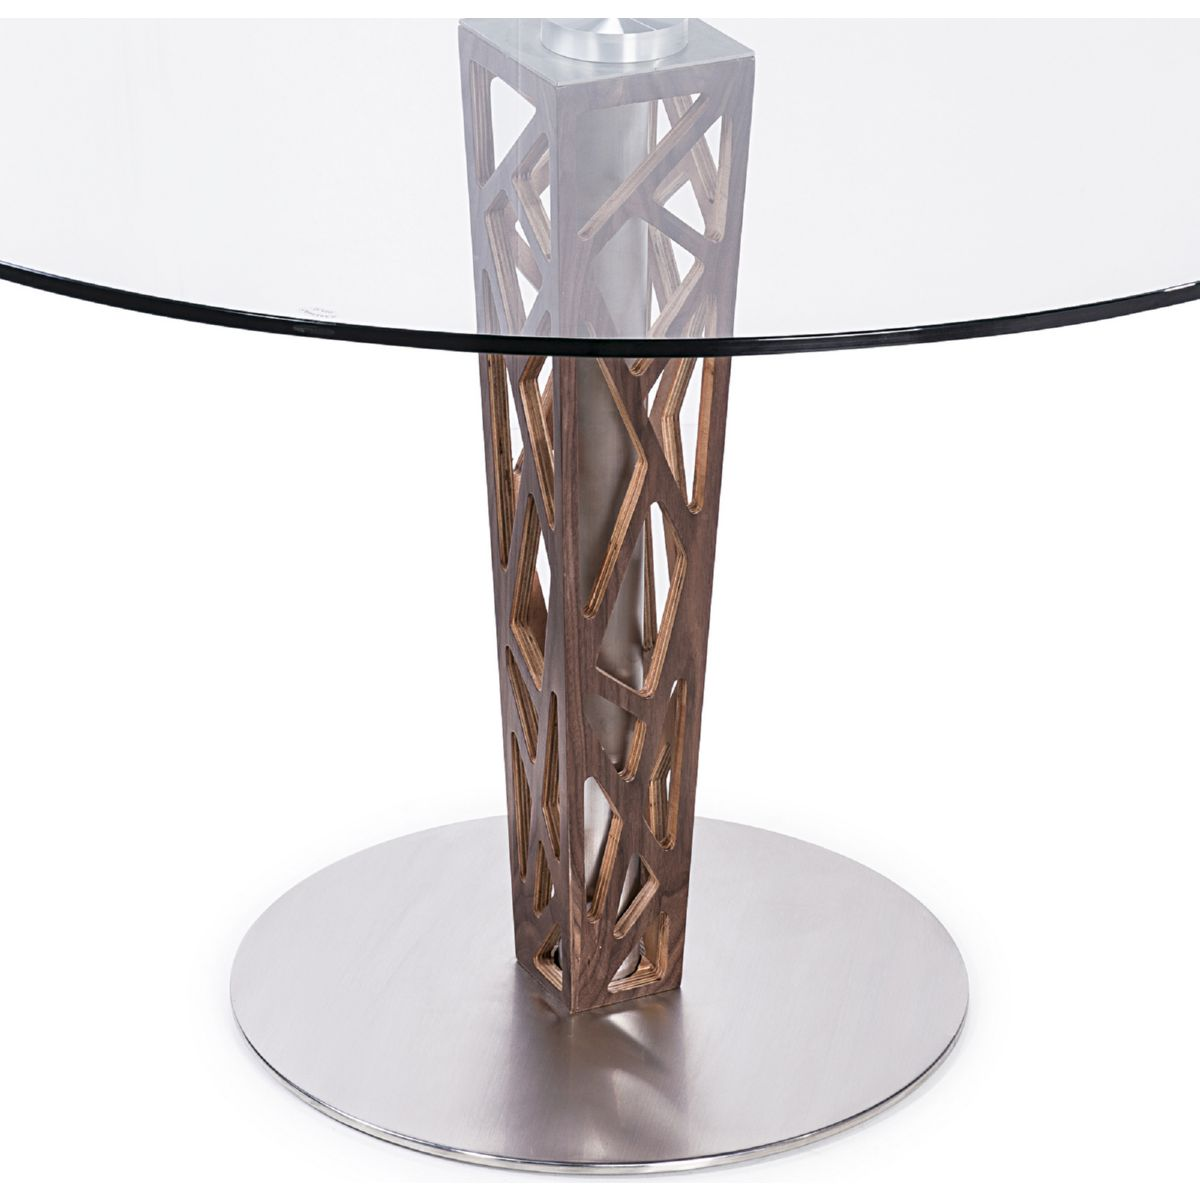 Armen living lccrditogr crystal 48 round dining table in walnut crystal 48 round dining table in walnut veneer brushed stainless steel tempered glass top geotapseo Images